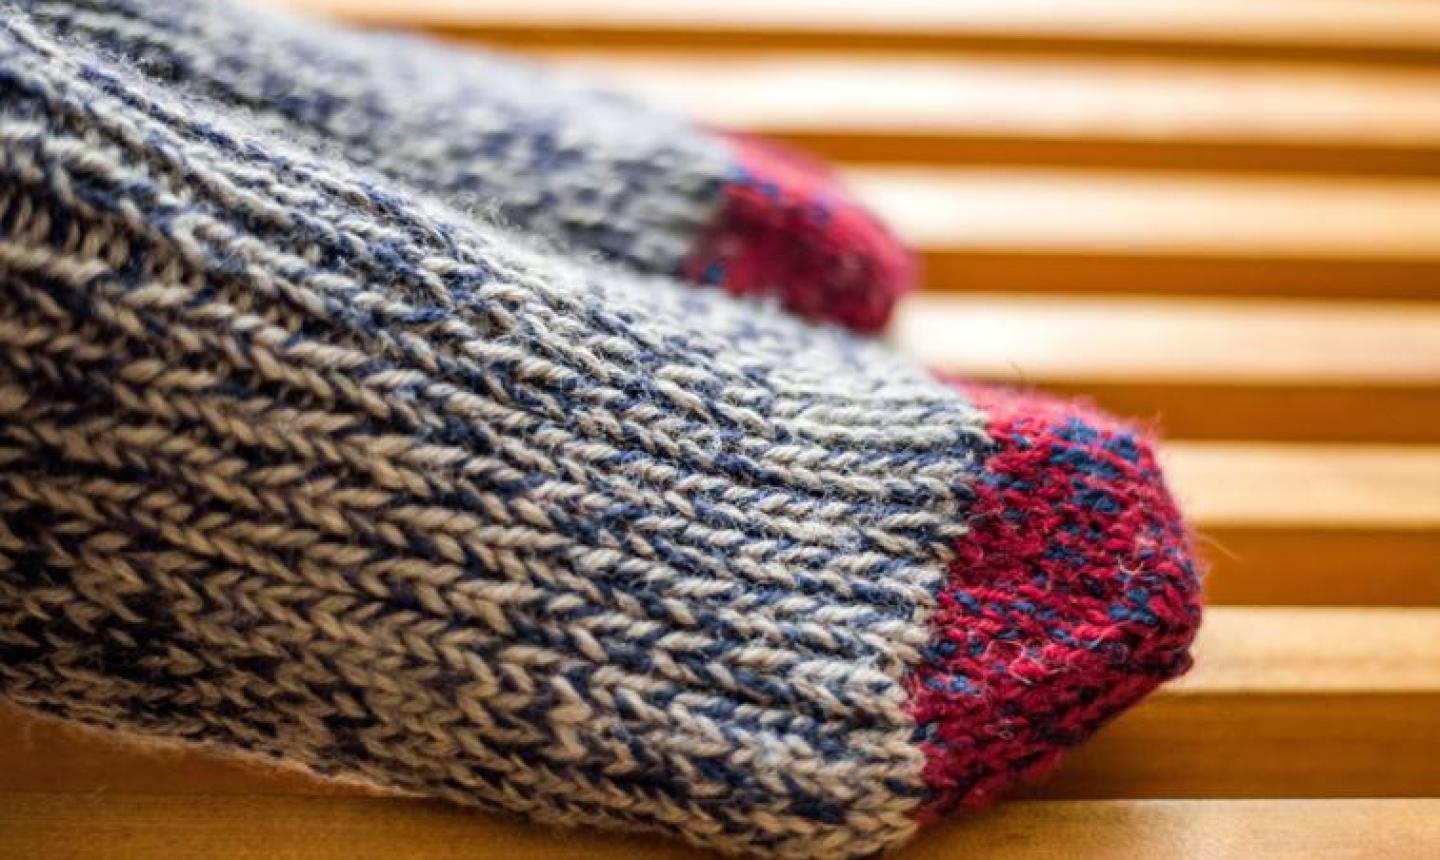 Free Knitting Patterns For Socks On Four Needles 7 Pro Tips For Sock Knitting Success Even If Its Your First Time